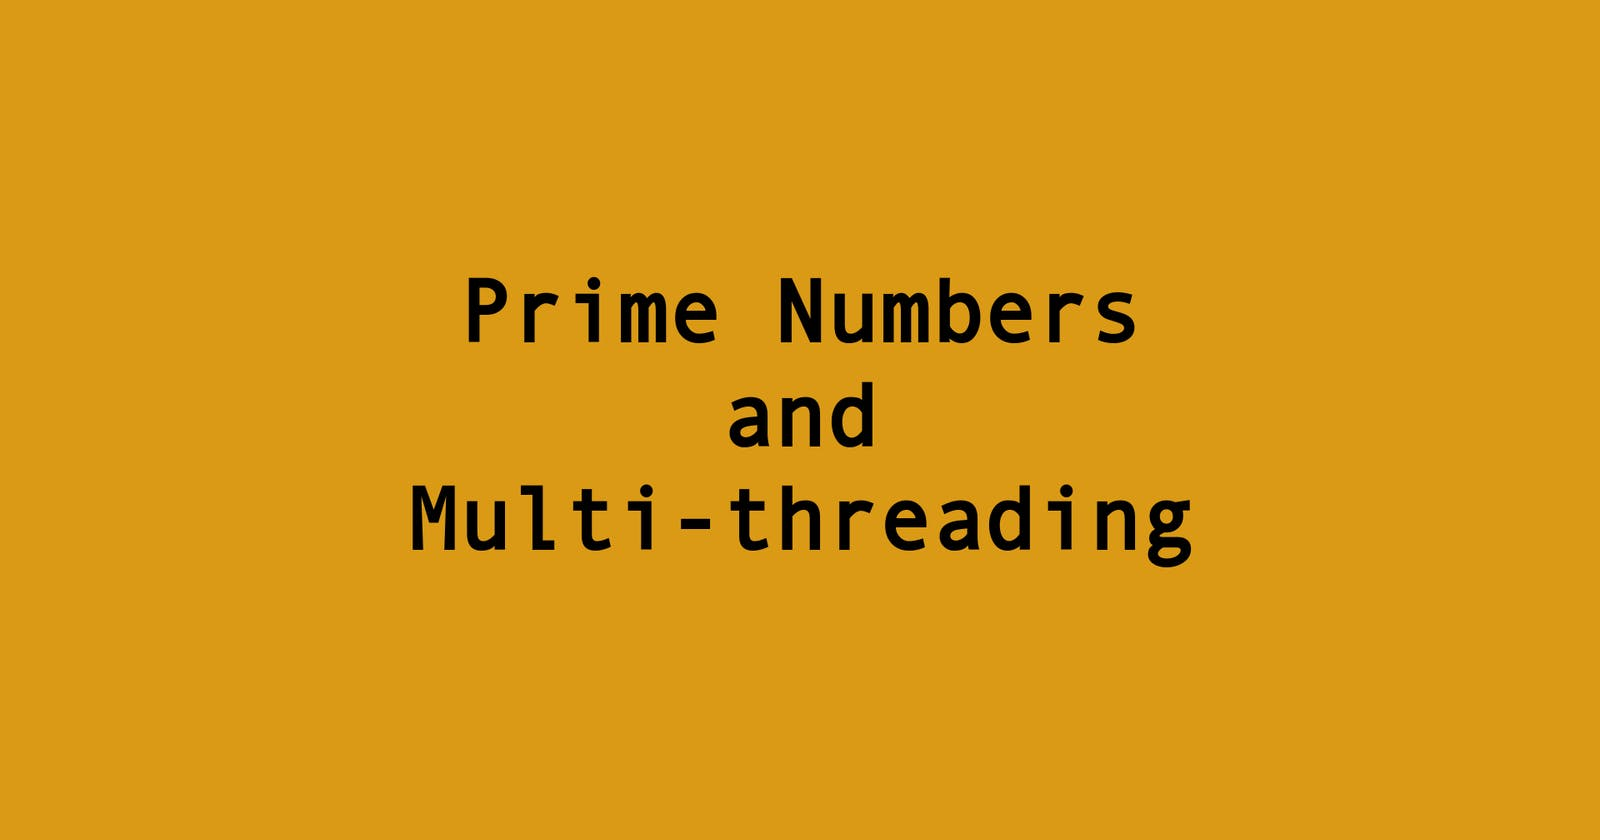 Prime Numbers and Multi-threading